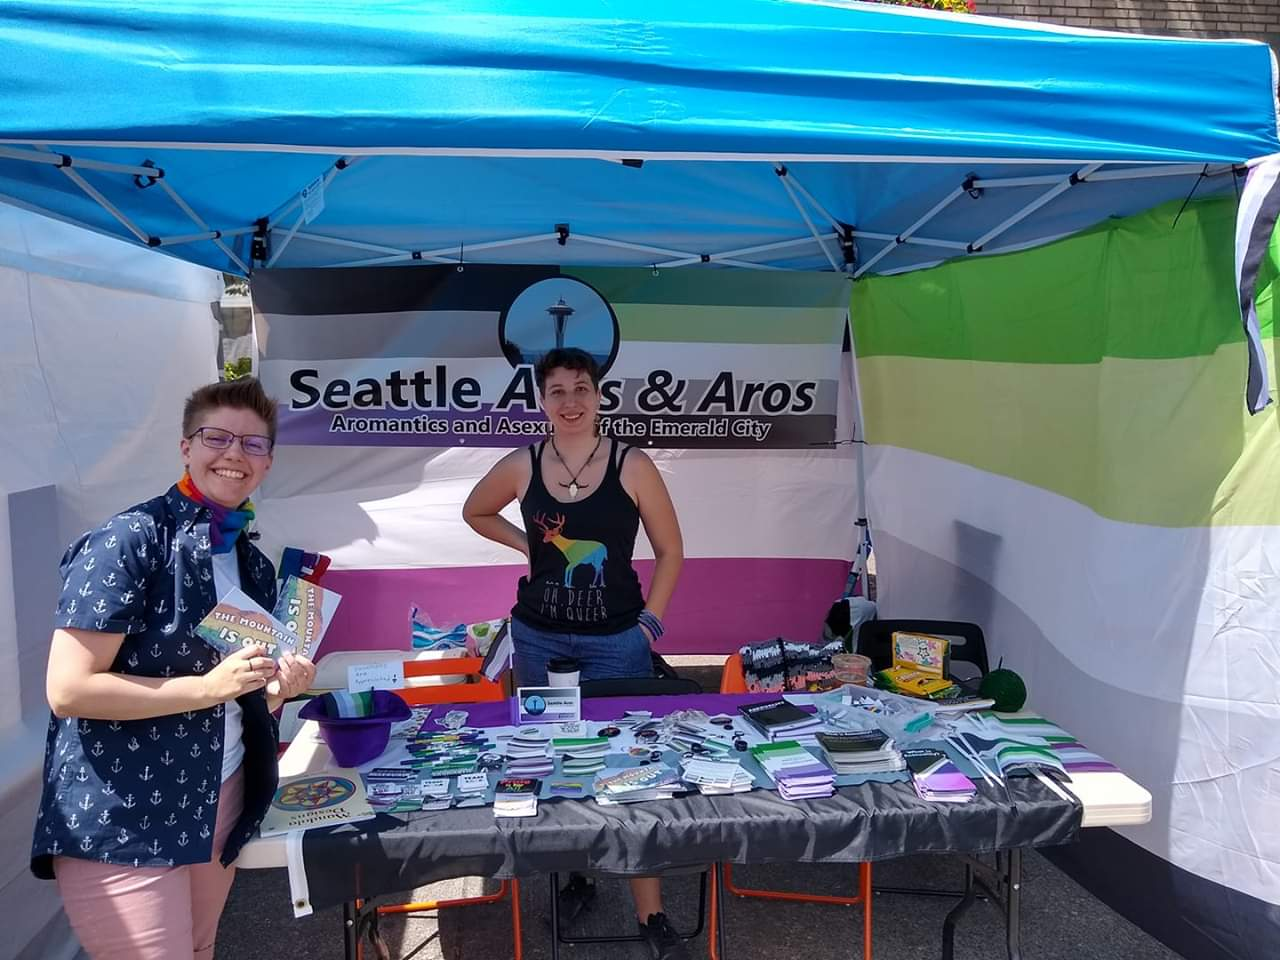 Seattle Aces & Aros' booth